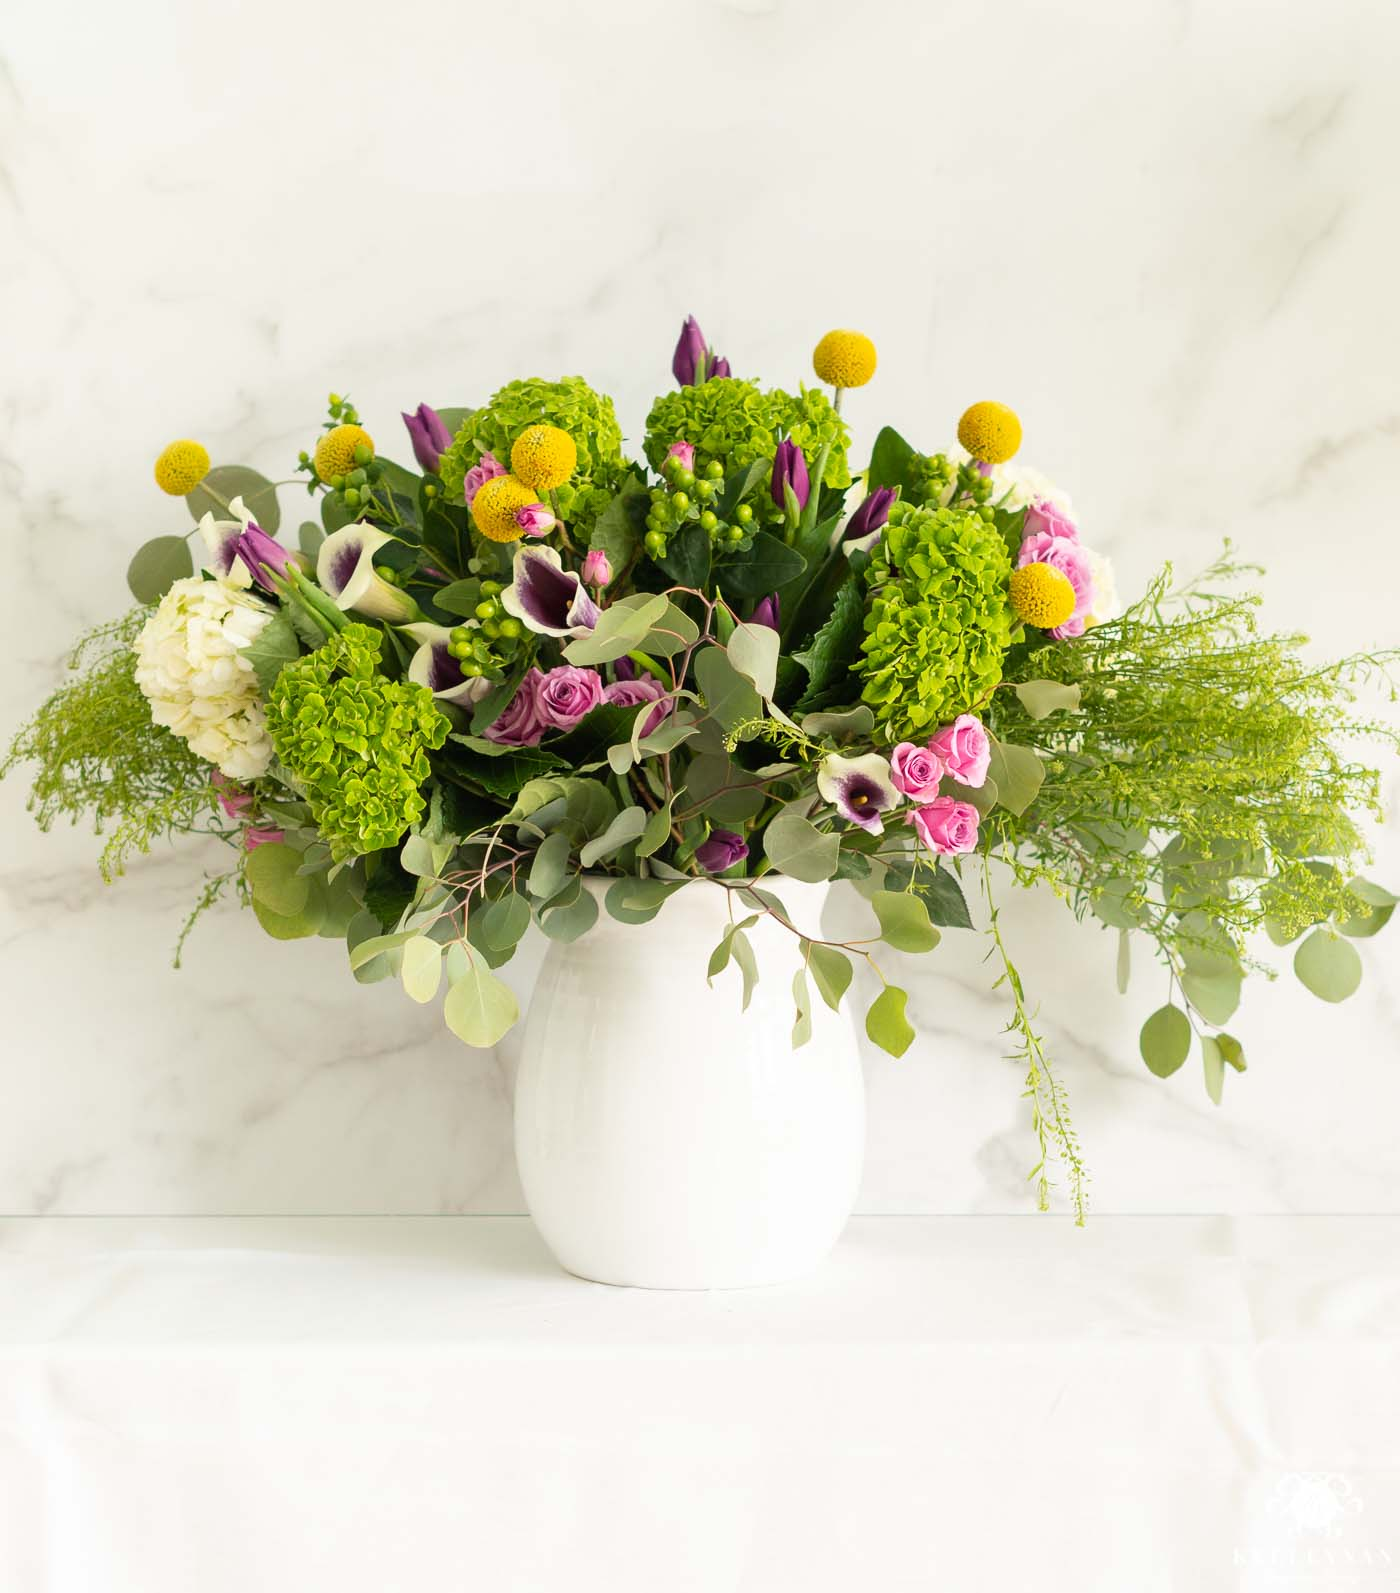 Inexpensive Trader Joe's Flower Arrangements - from $5 to $50!